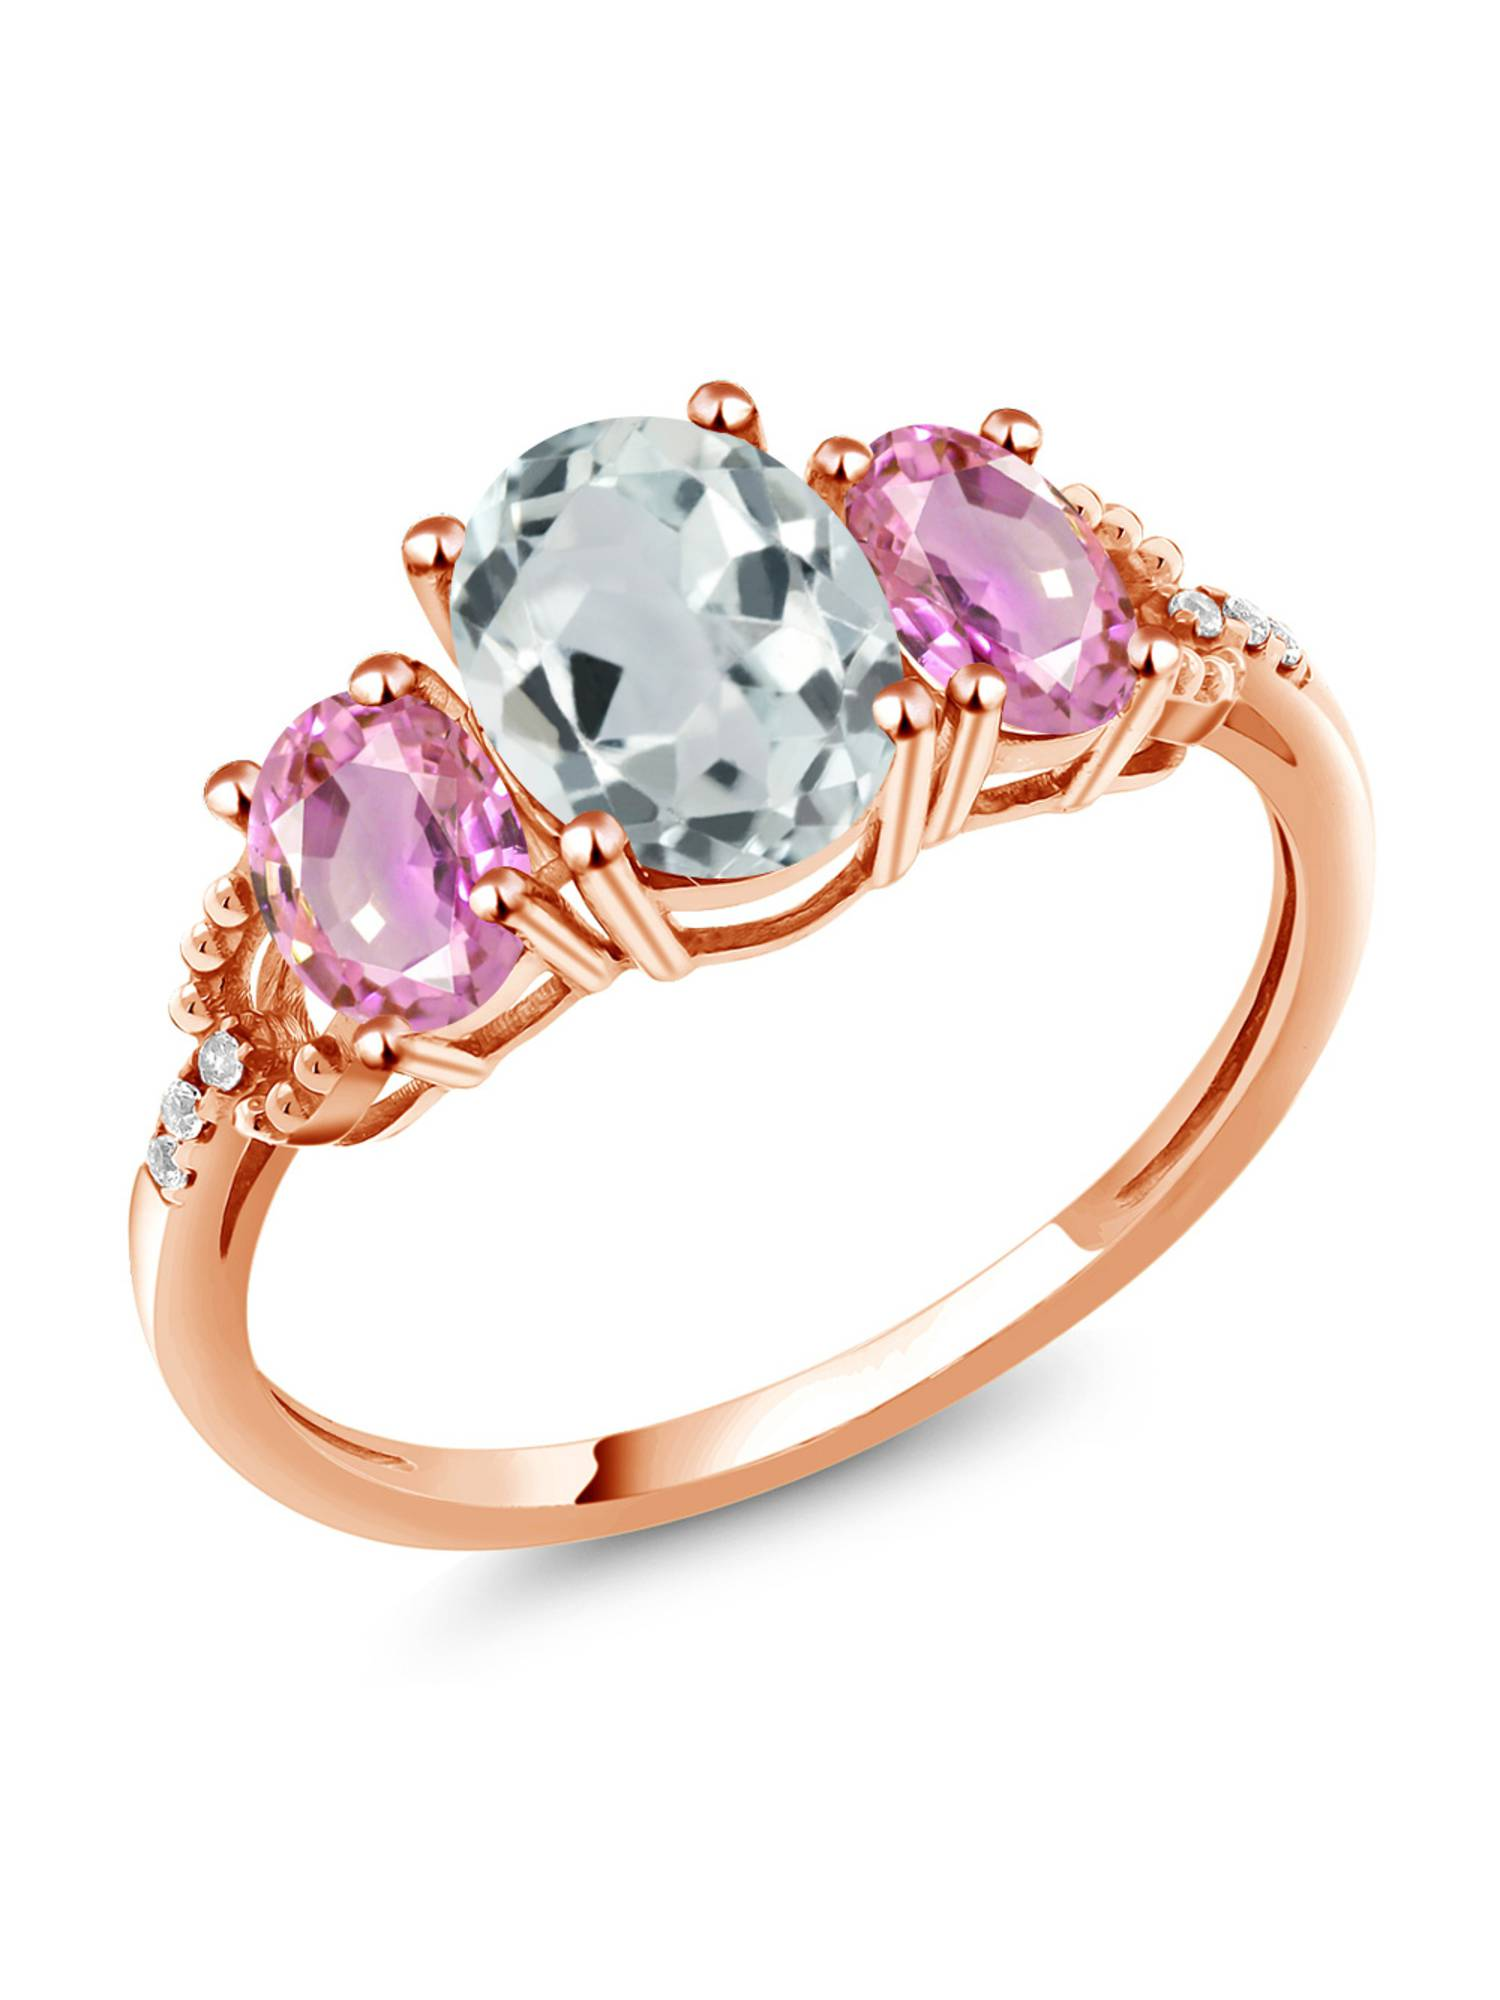 2.24 Ct Oval Sky Blue Aquamarine Pink Sapphire 10K Rose Gold Diamond Accent Ring by